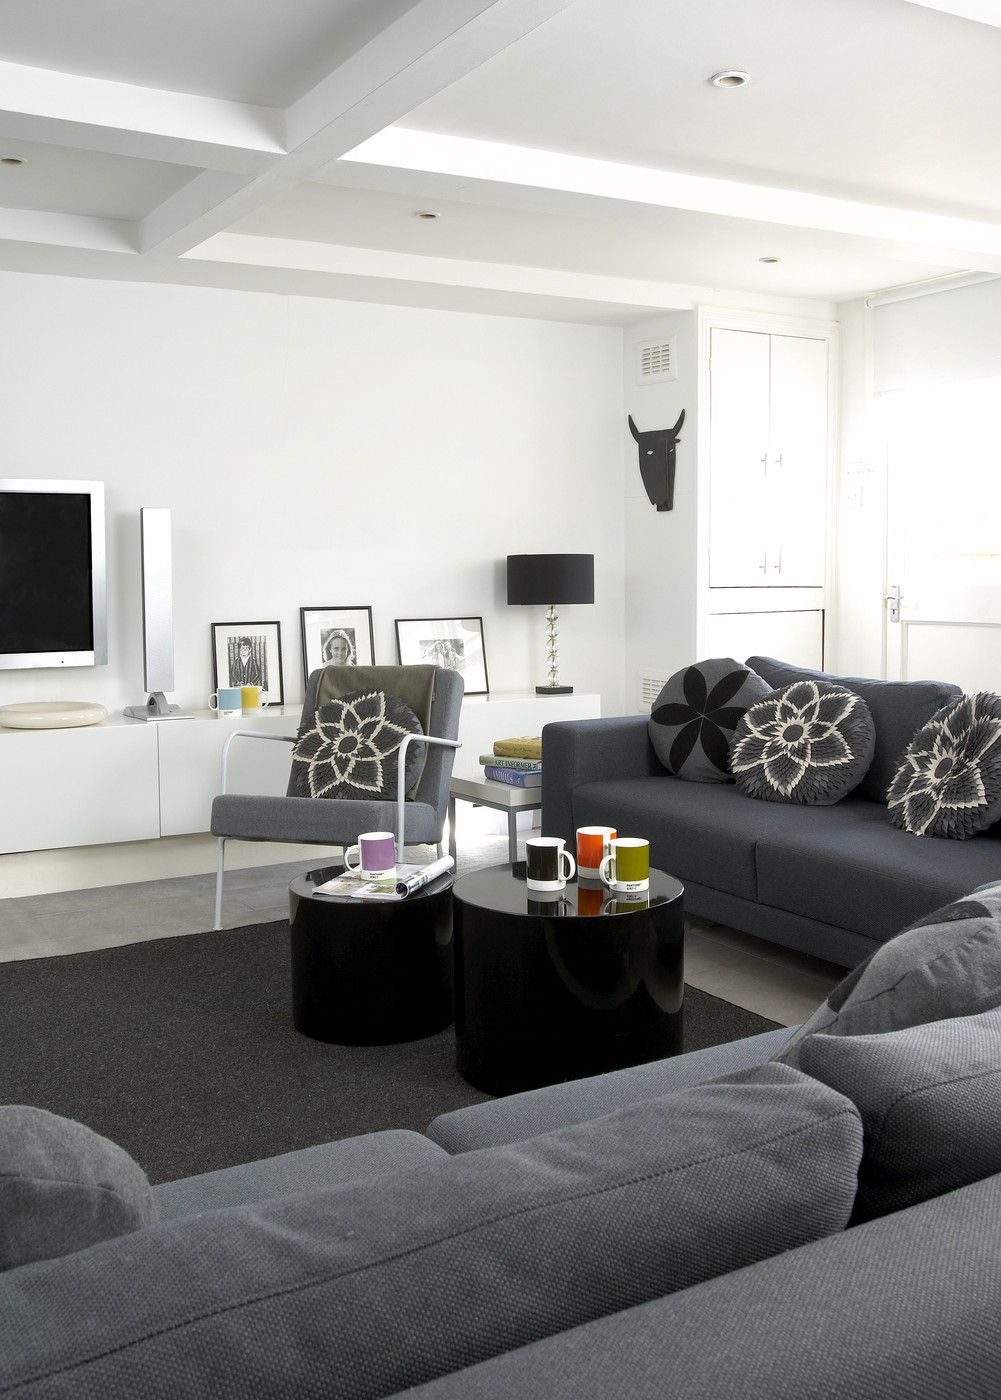 Best ideas about Contemporary Family Room . Save or Pin Gray Contemporary Modern Family Room Living Room Design Now.